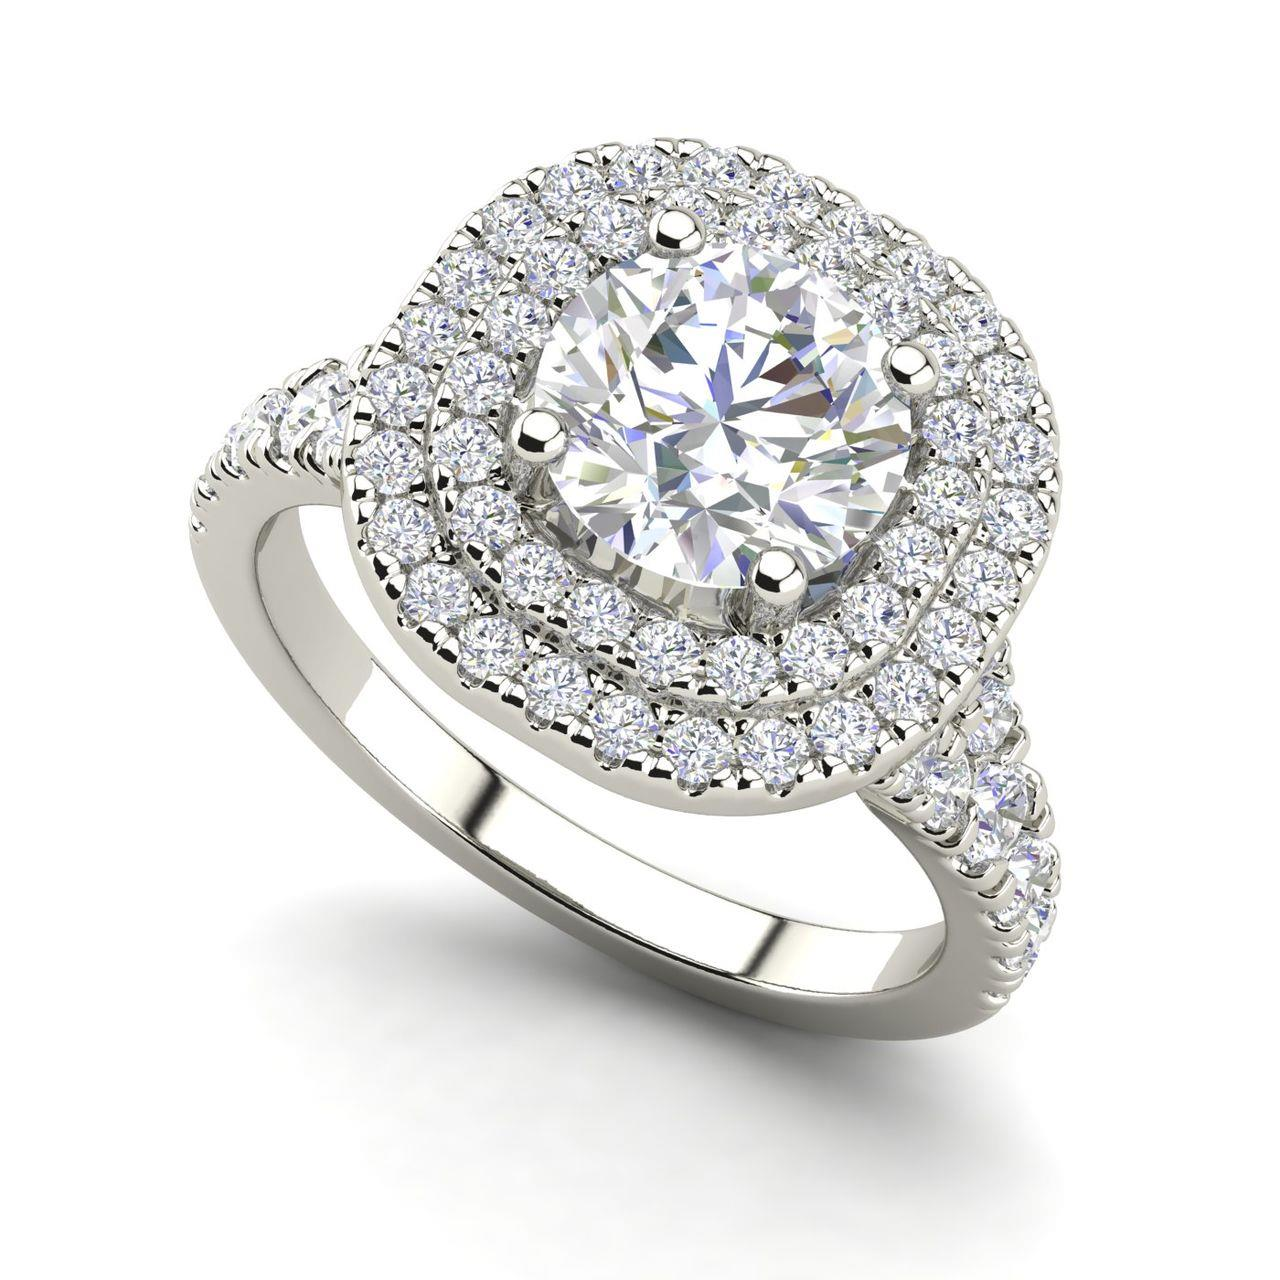 Double Halo 1.25 Carat Round Cut Diamond Engagement Ring